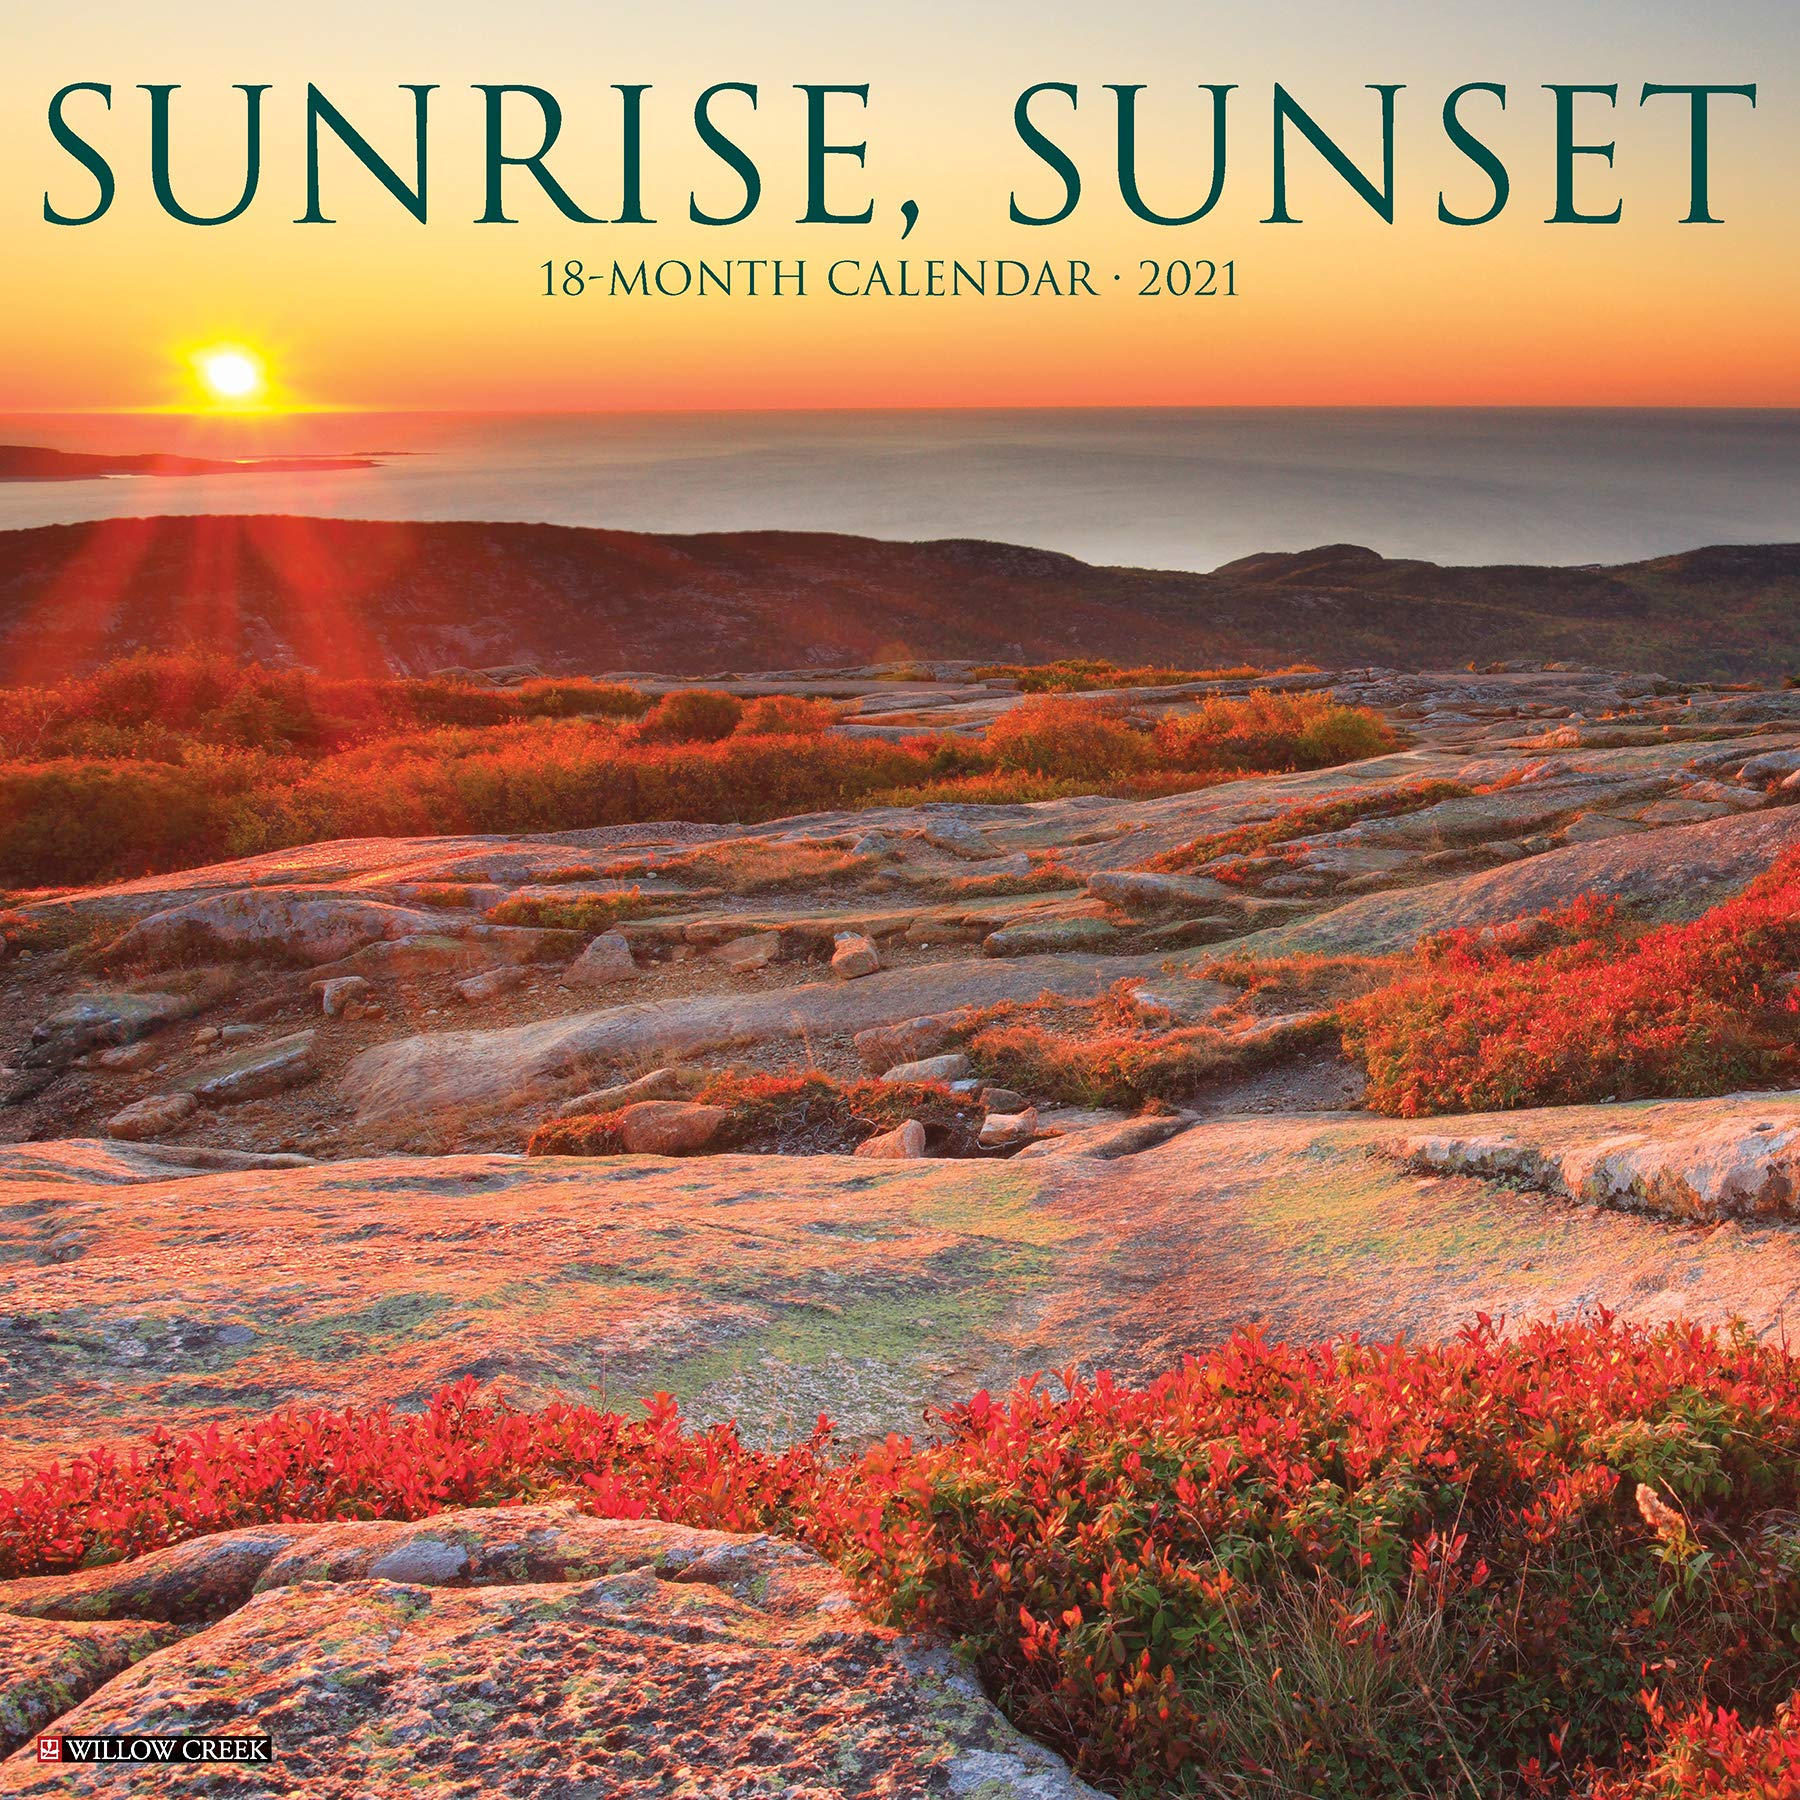 Sunrise Calendar 2021 Sunrise, Sunset 2021 Wall Calendar: Willow Creek Press